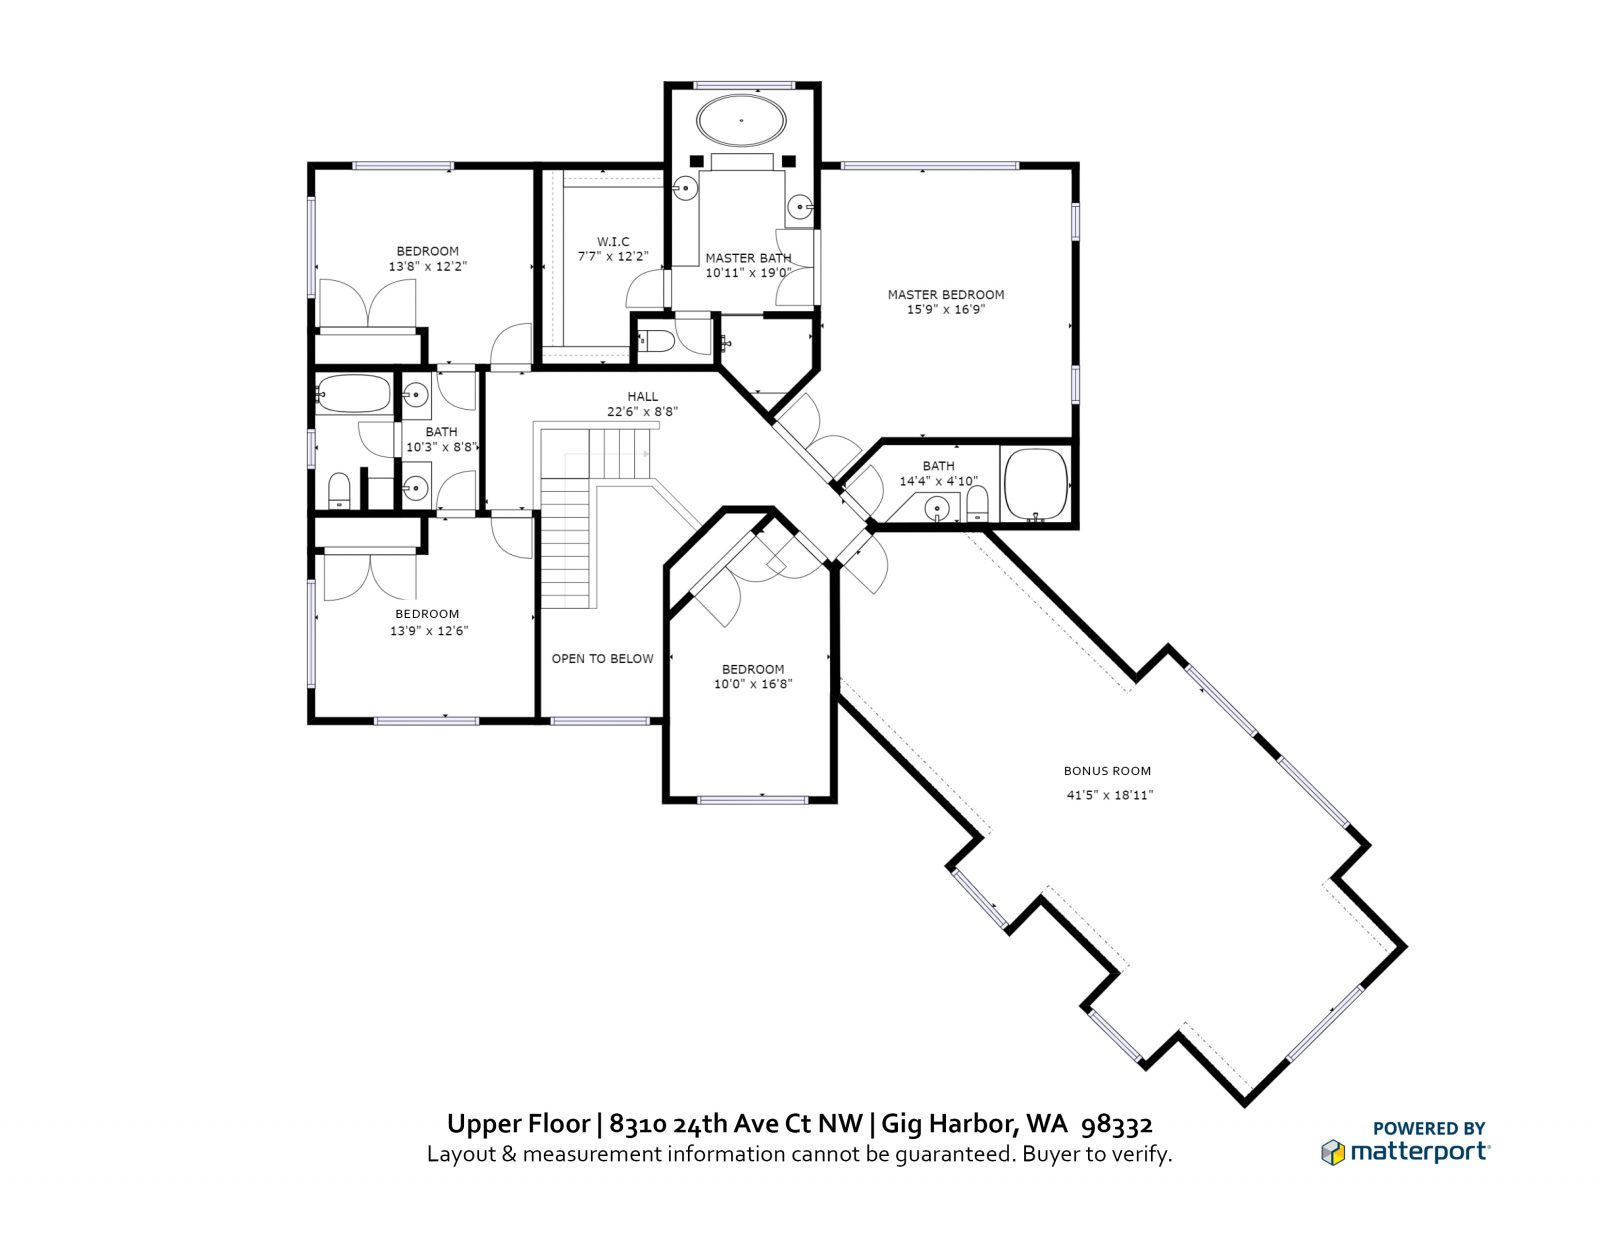 UPPER FLOOR: 8310 24th Ave Ct NW